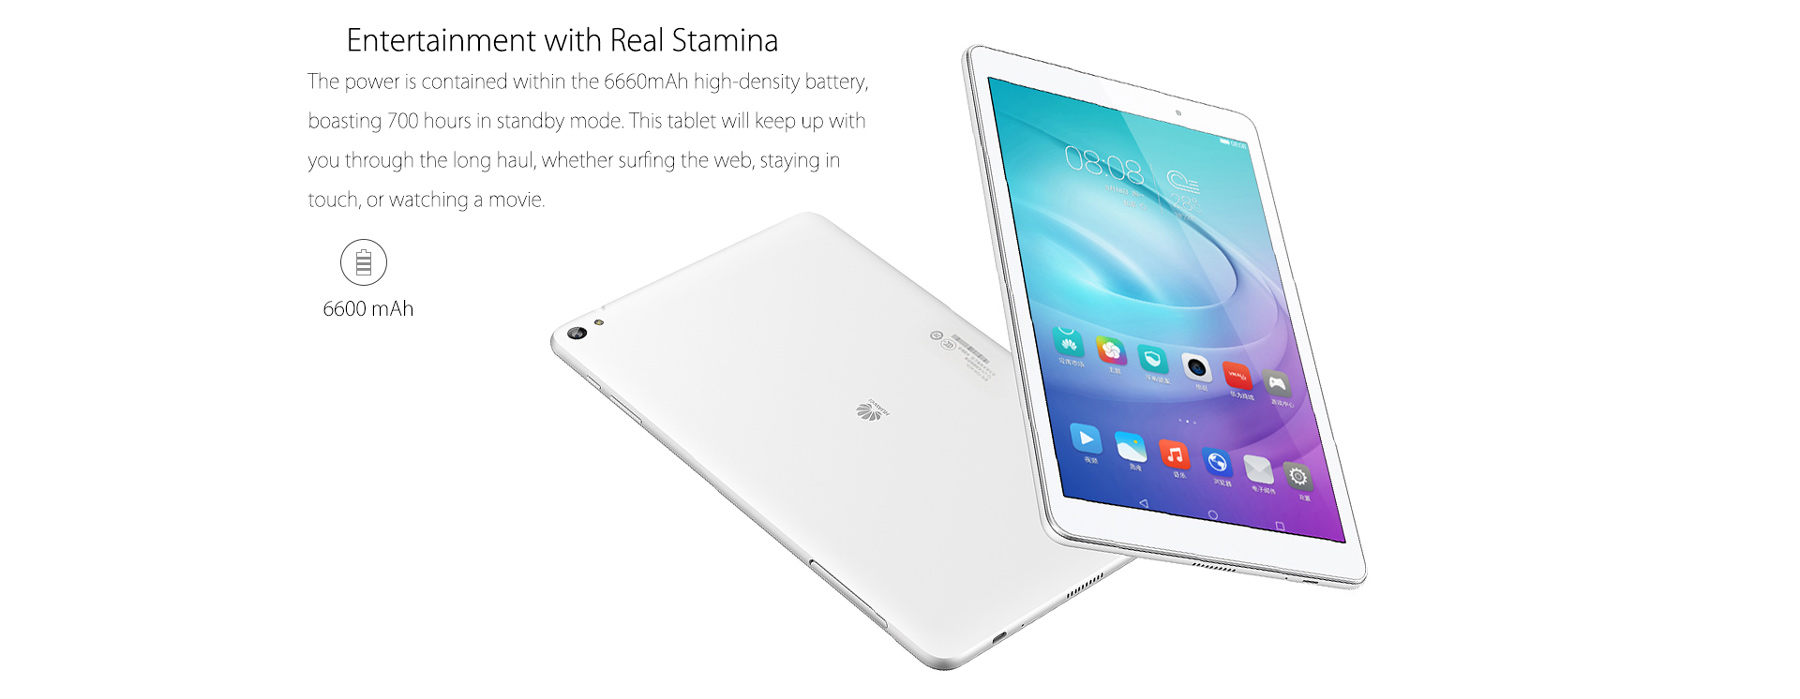 HUAWEI M2 FDR-A03L Android 5.1 Tablet PC Snapdragon 615 Octa Core 1.2GHz 10.1 inch Screen 3GB RAM 16GB ROM 8.0MP Main Camera GPS Bluetooth 4.1